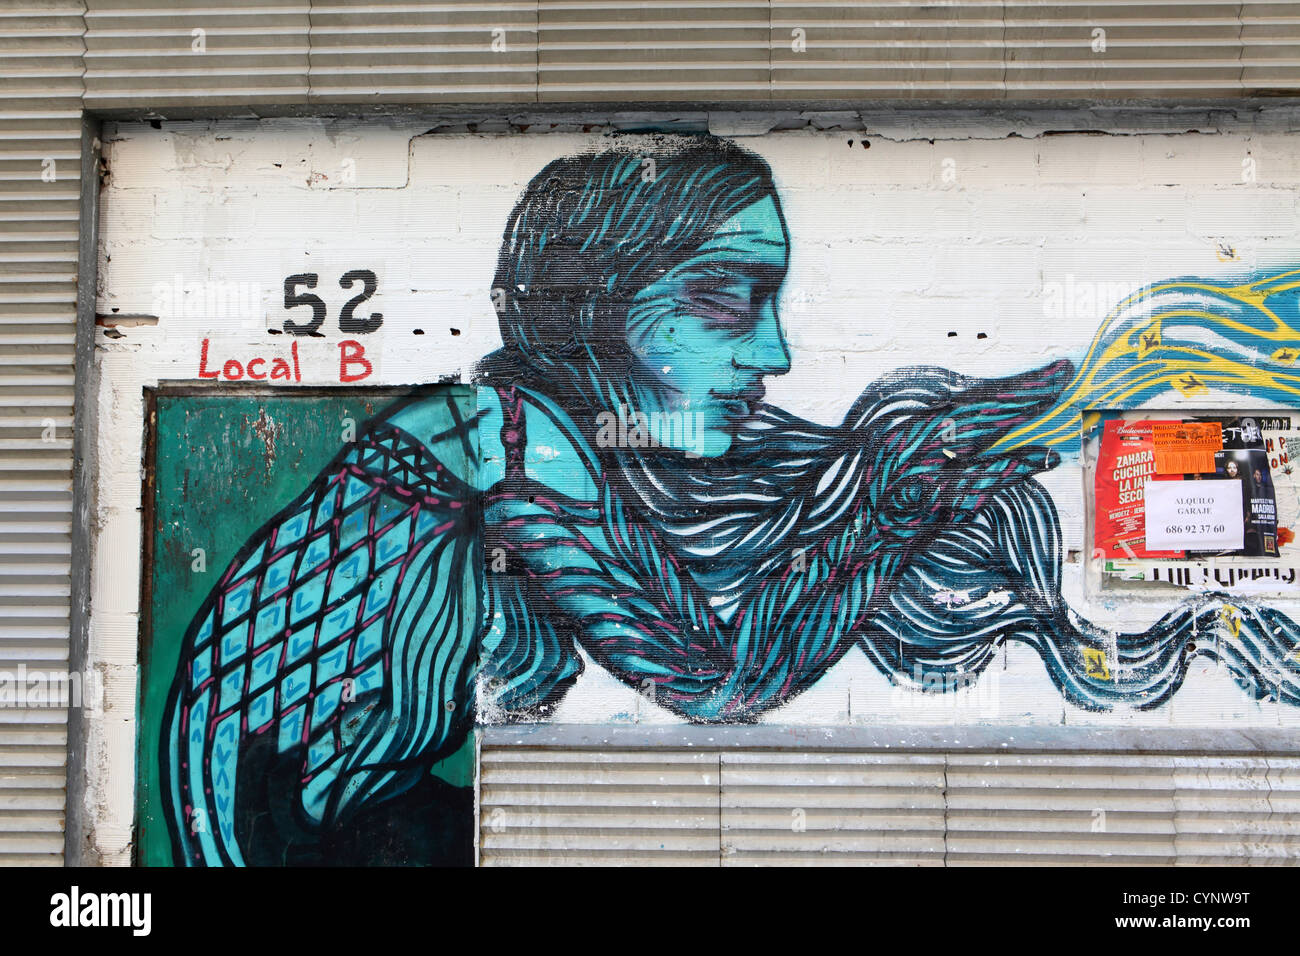 Street art graffiti wall painting of woman with long hair self expression madrid spain espana